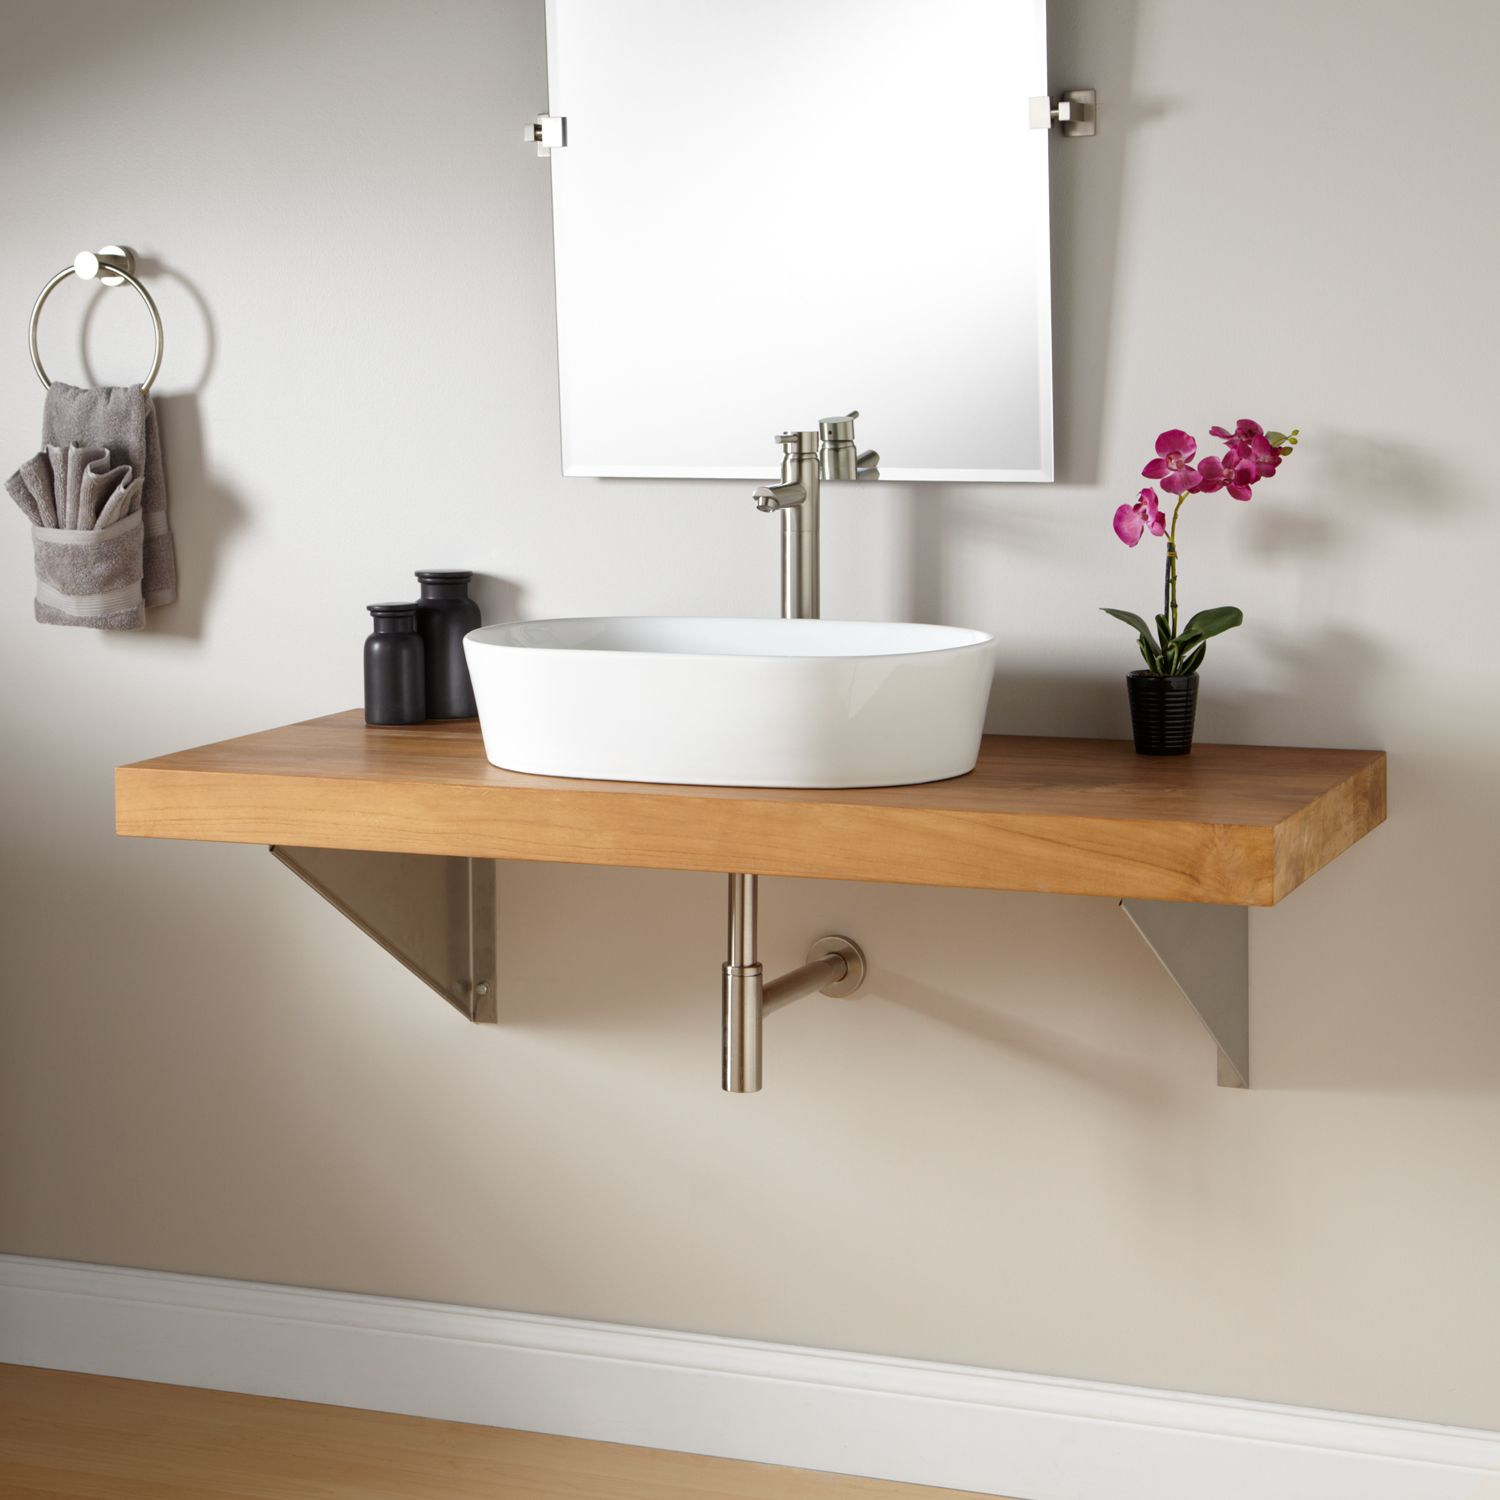 Teak Vanity Bathroom 49 Teak Wall Mount Vanity For Vessel Sink Triangular Brackets